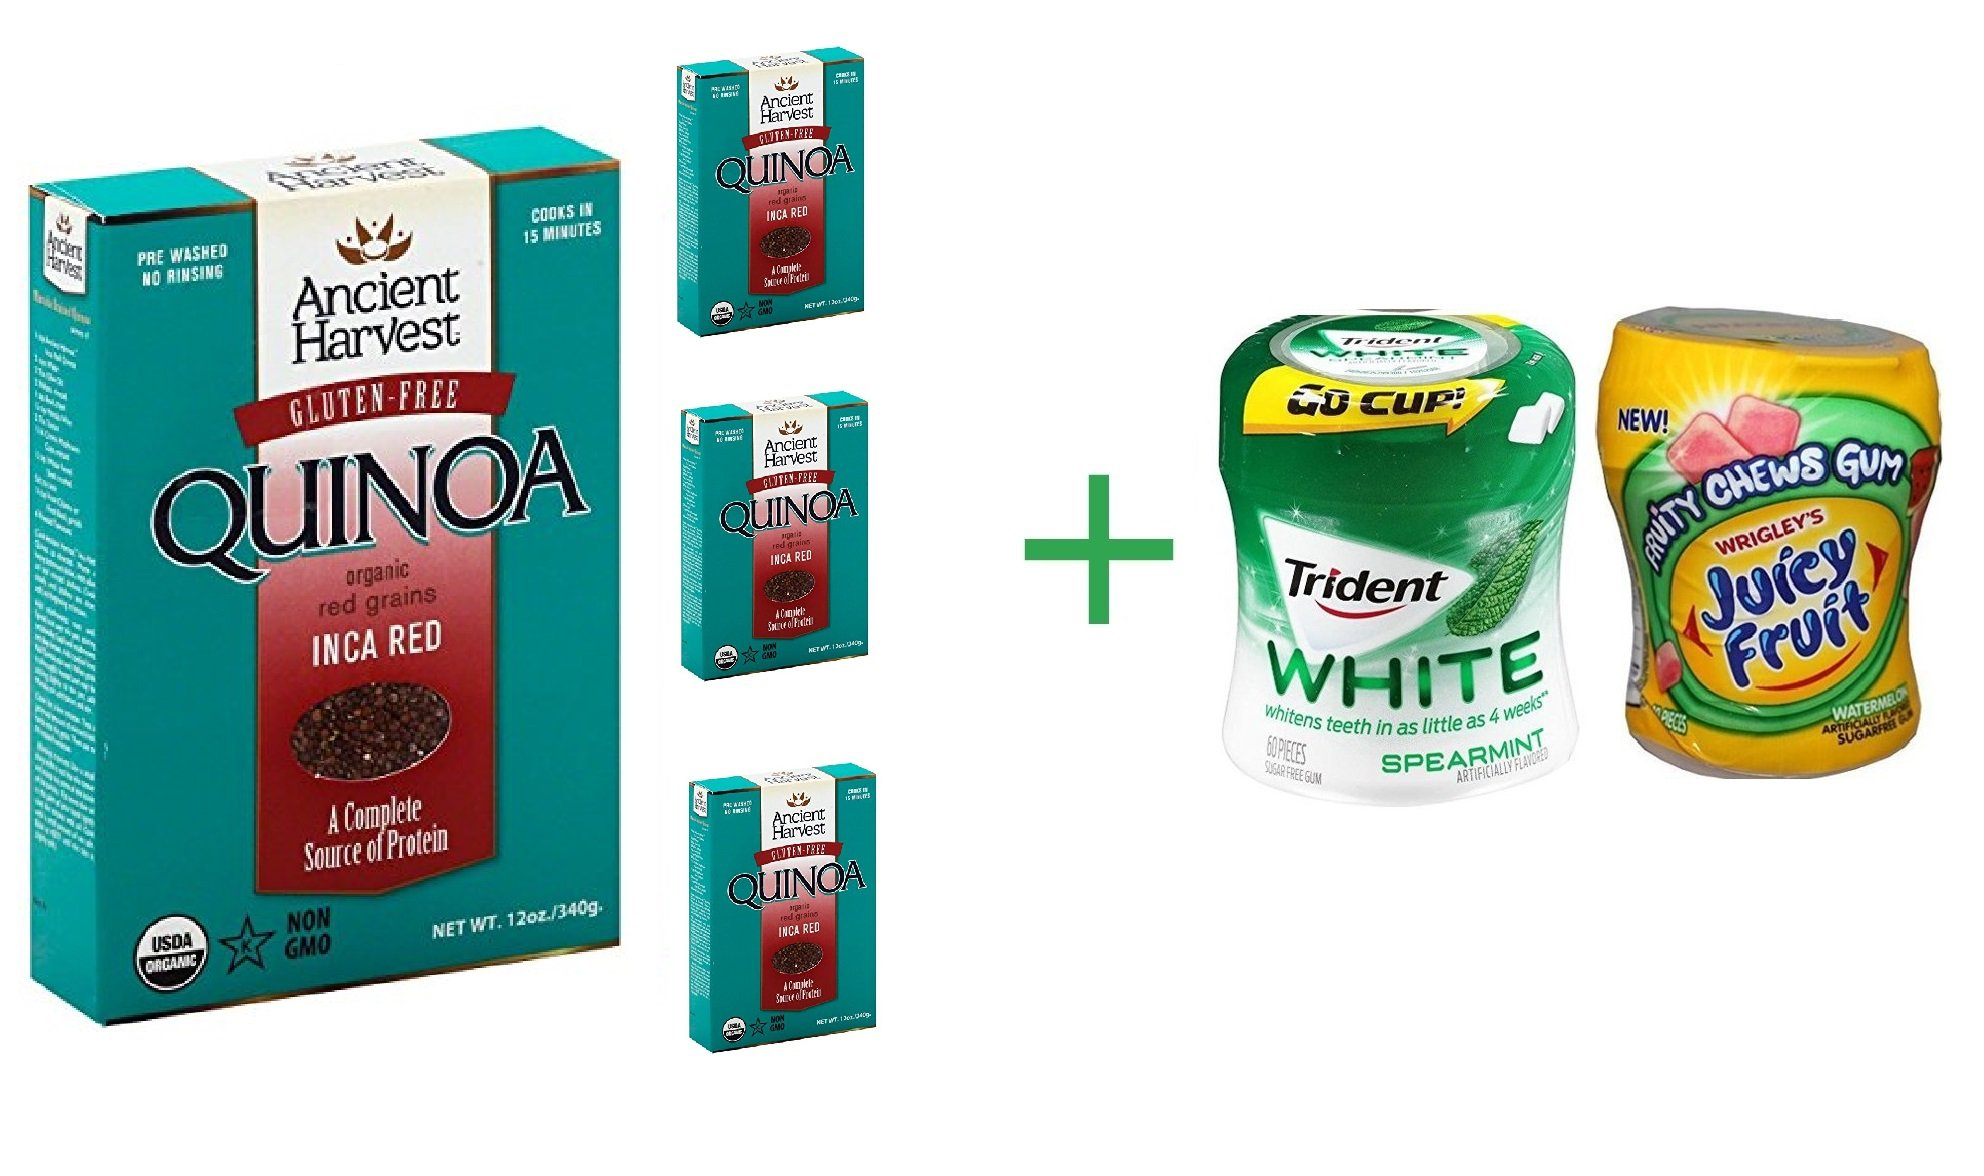 Ancient Harvest Organic Gluten Free Inca Red Quinoa 12 oz (4 Pack) + Fruity Chews Gum Watermelon 1/60 Count + Trident Go Cup Peppermint and Spearmint 1/60